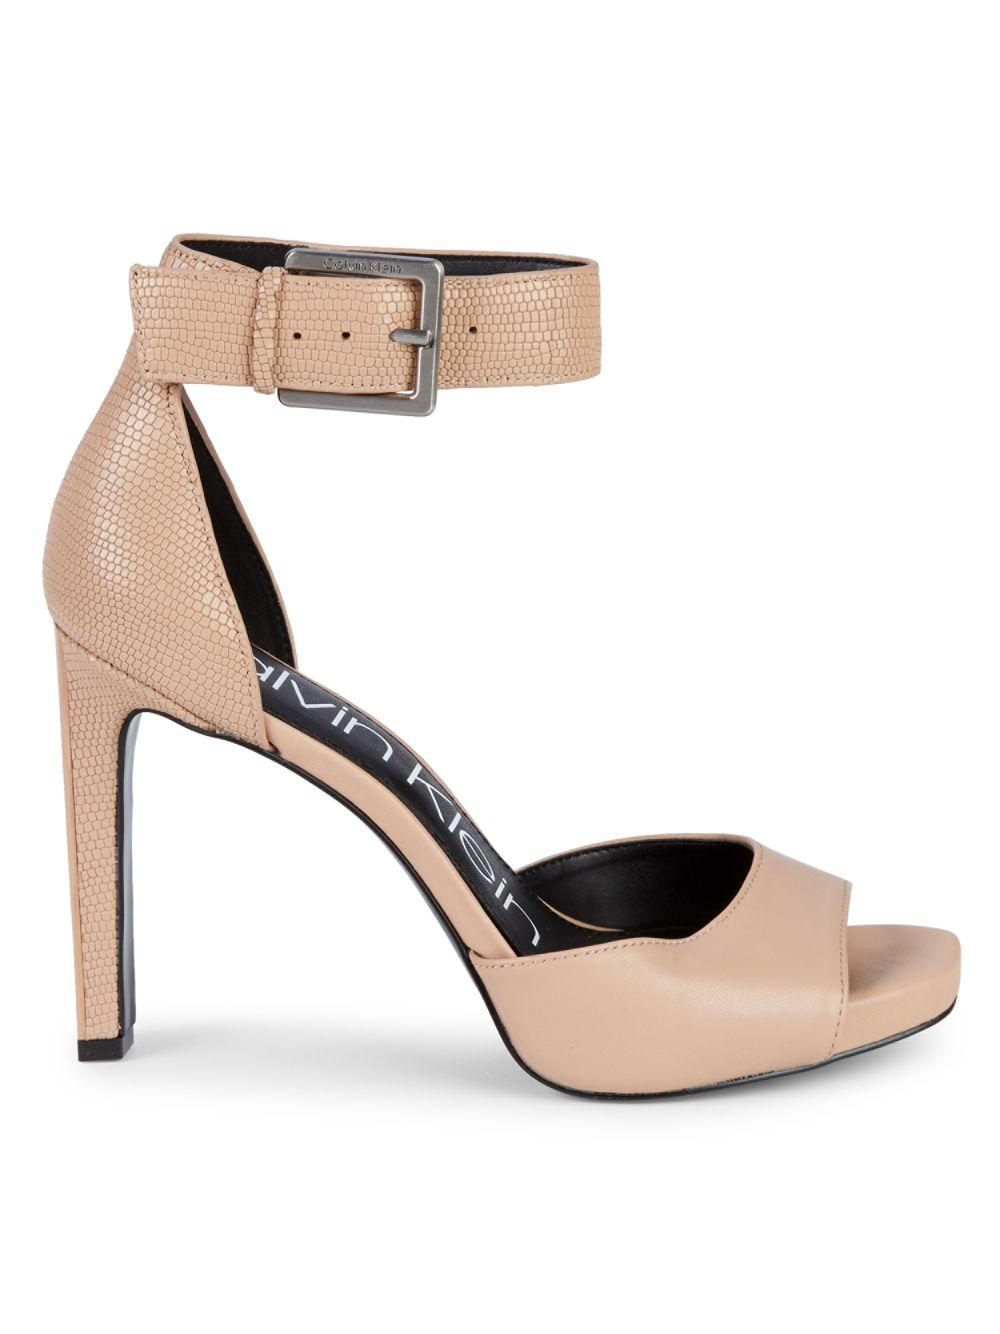 5650a81b7f7 Lyst - Calvin Klein Marinda Ankle-strap Leather Dress Sandals in Natural